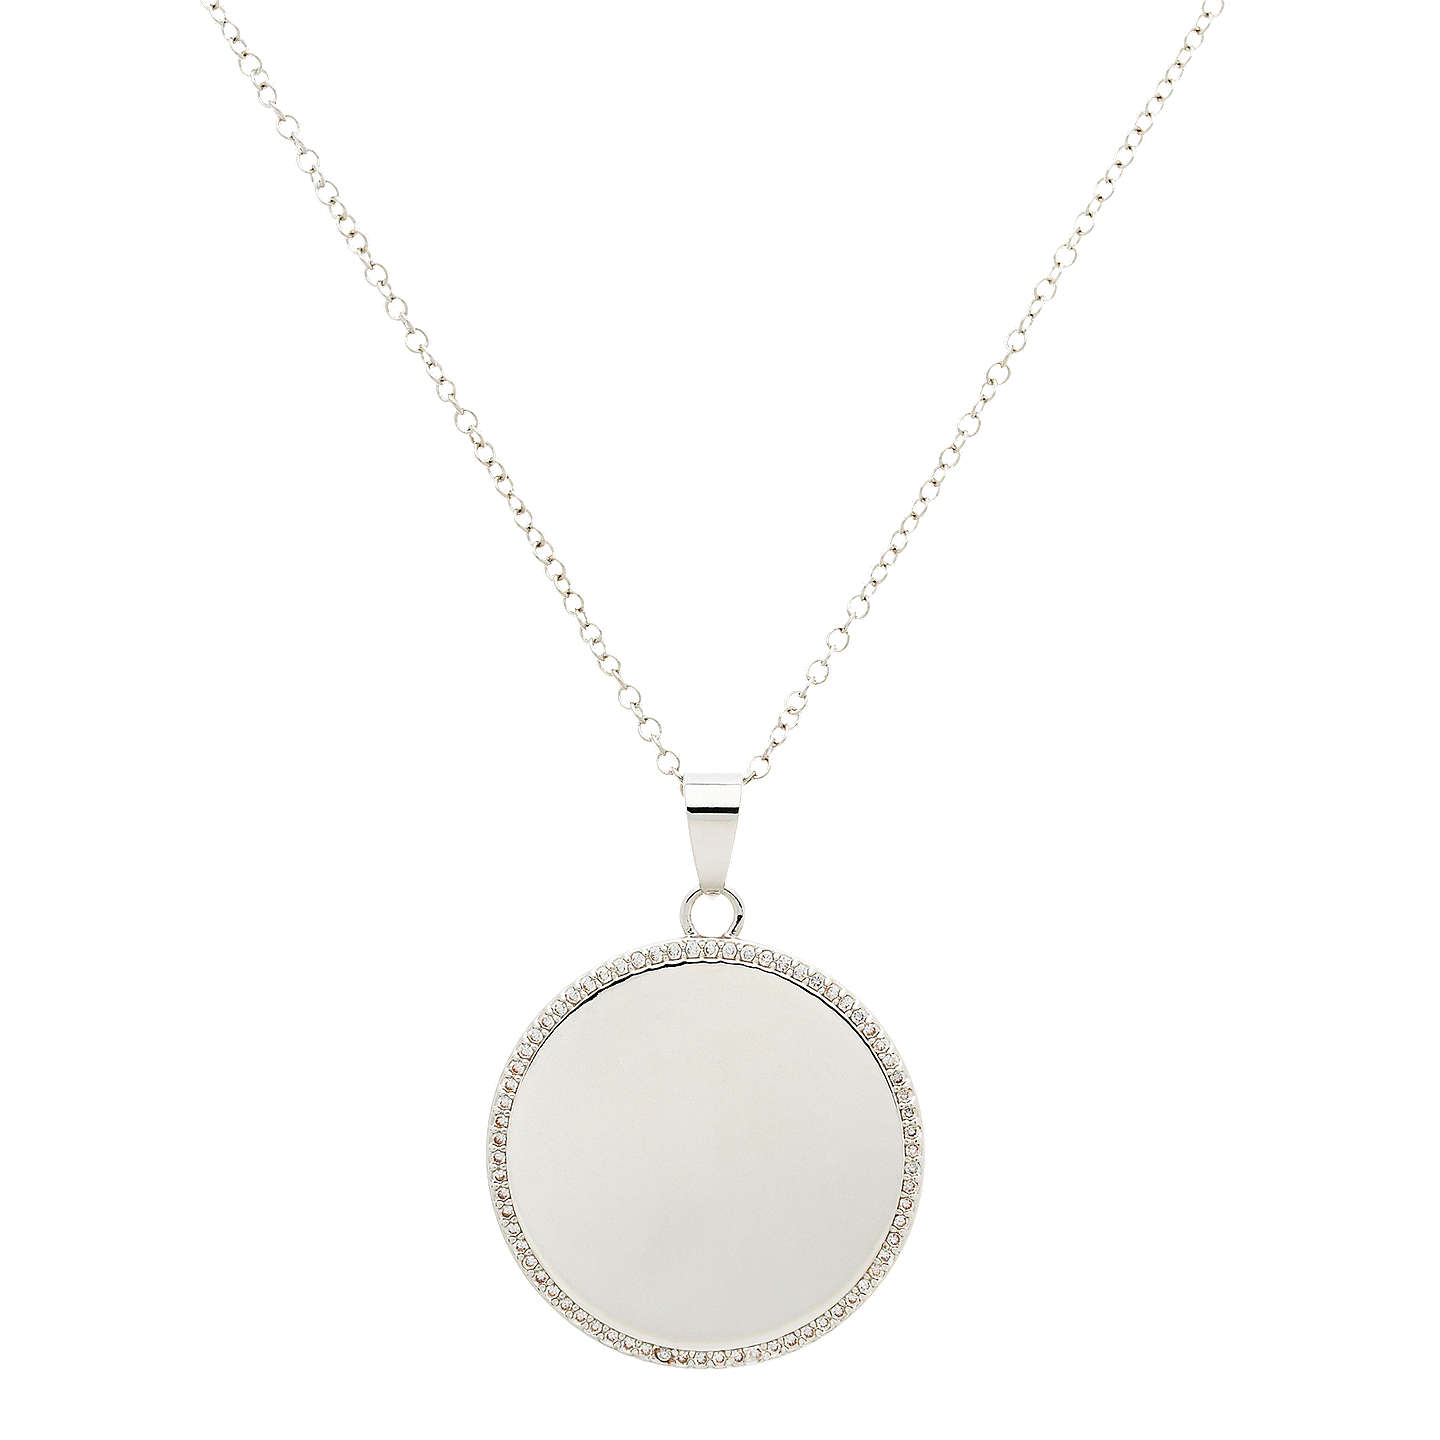 Melissa odabash crystal disc pendant necklace at john lewis buymelissa odabash crystal disc pendant necklace silver online at johnlewis aloadofball Image collections